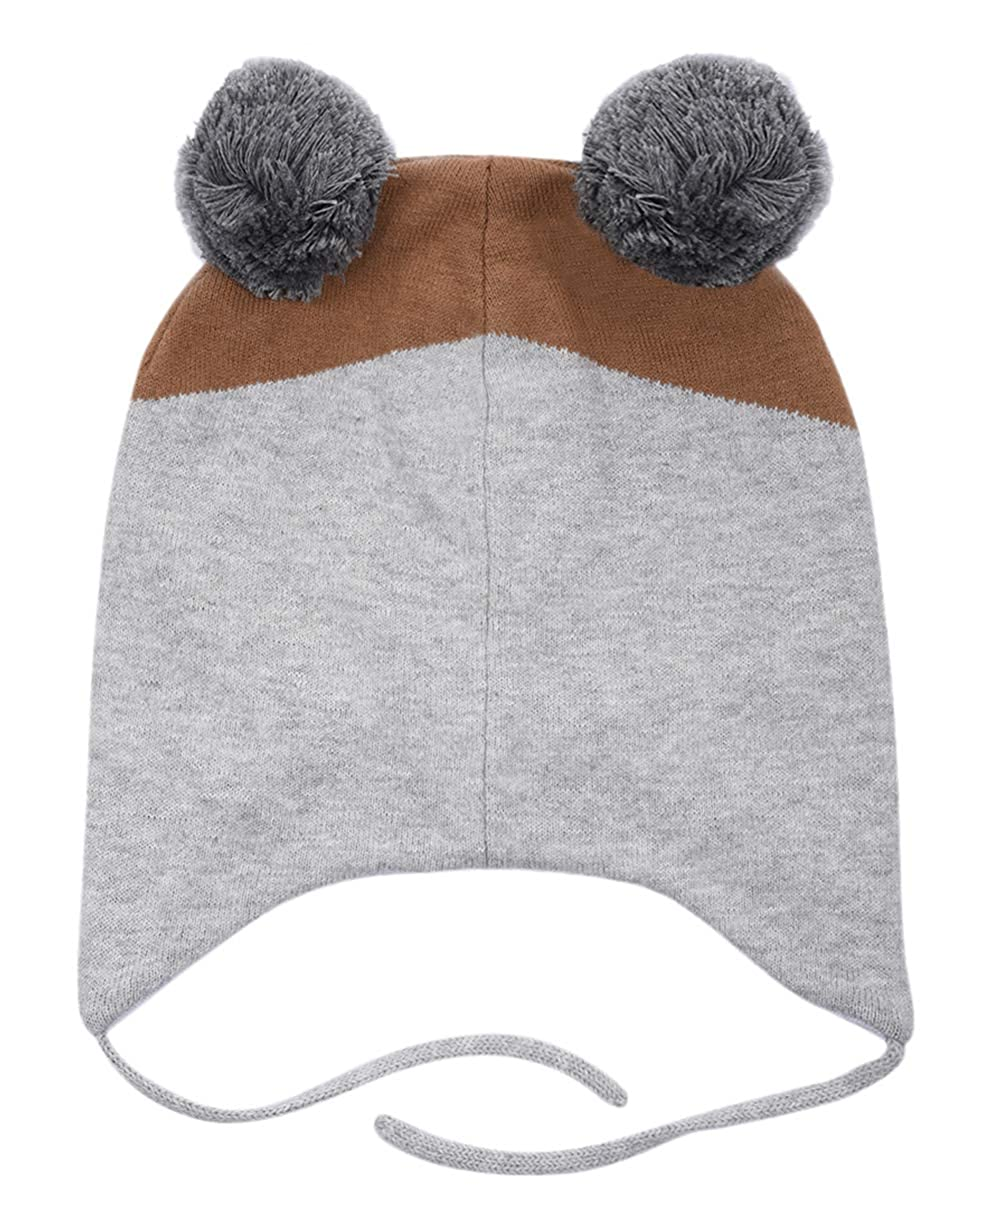 Amazon.com  Eriso Toddler Baby Fox Hat Mittens Set Little Kids Knit Winter  Caps  Clothing 0b9e48d0b3ff